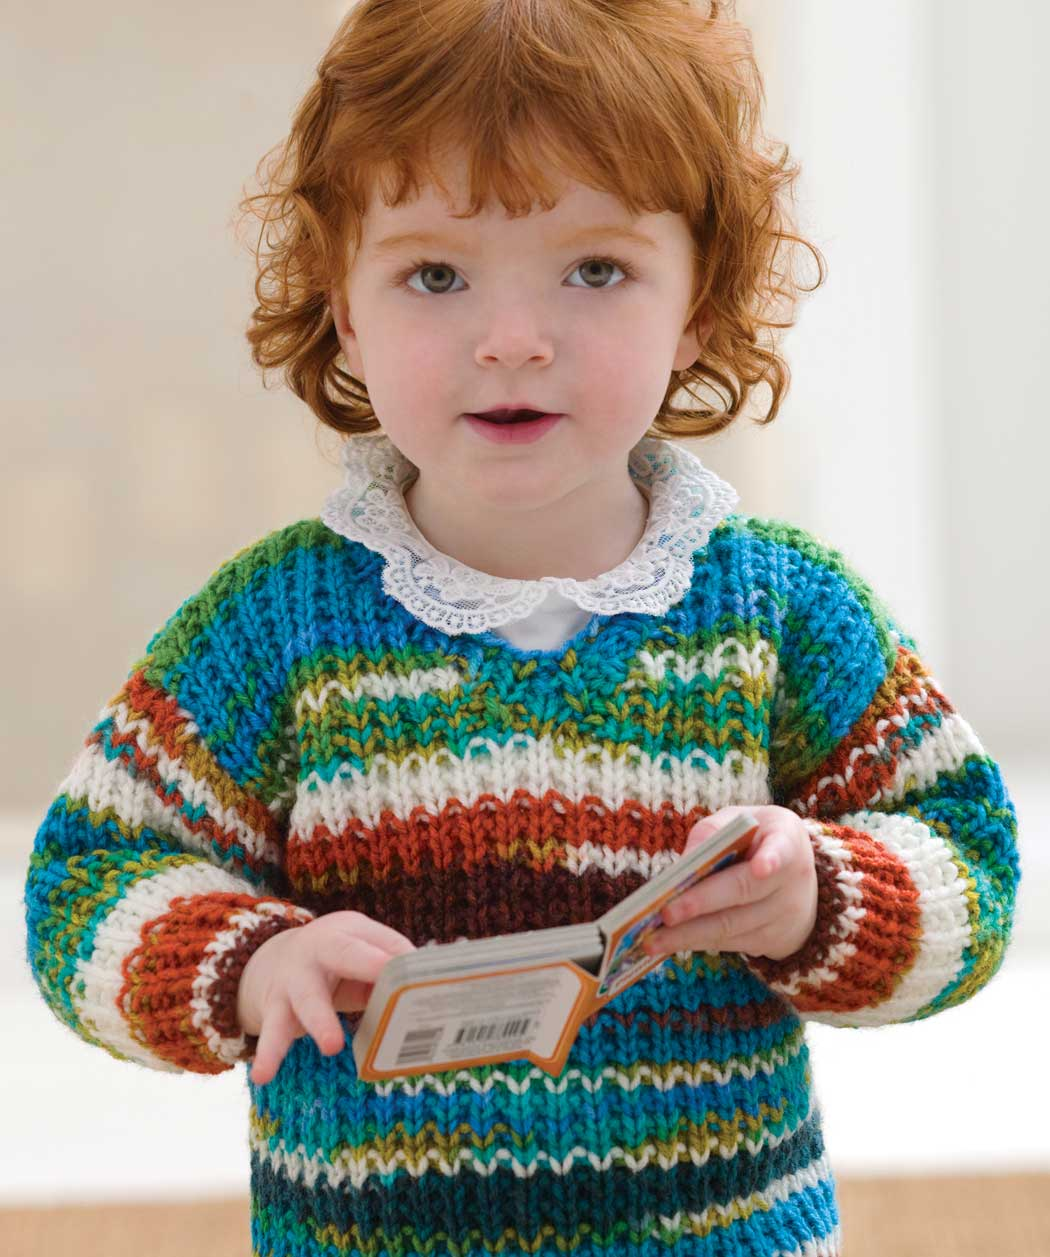 Knitting Patterns For Chunky Wool Sweaters : Baby Sweater Chunky Knit Pattern Photos